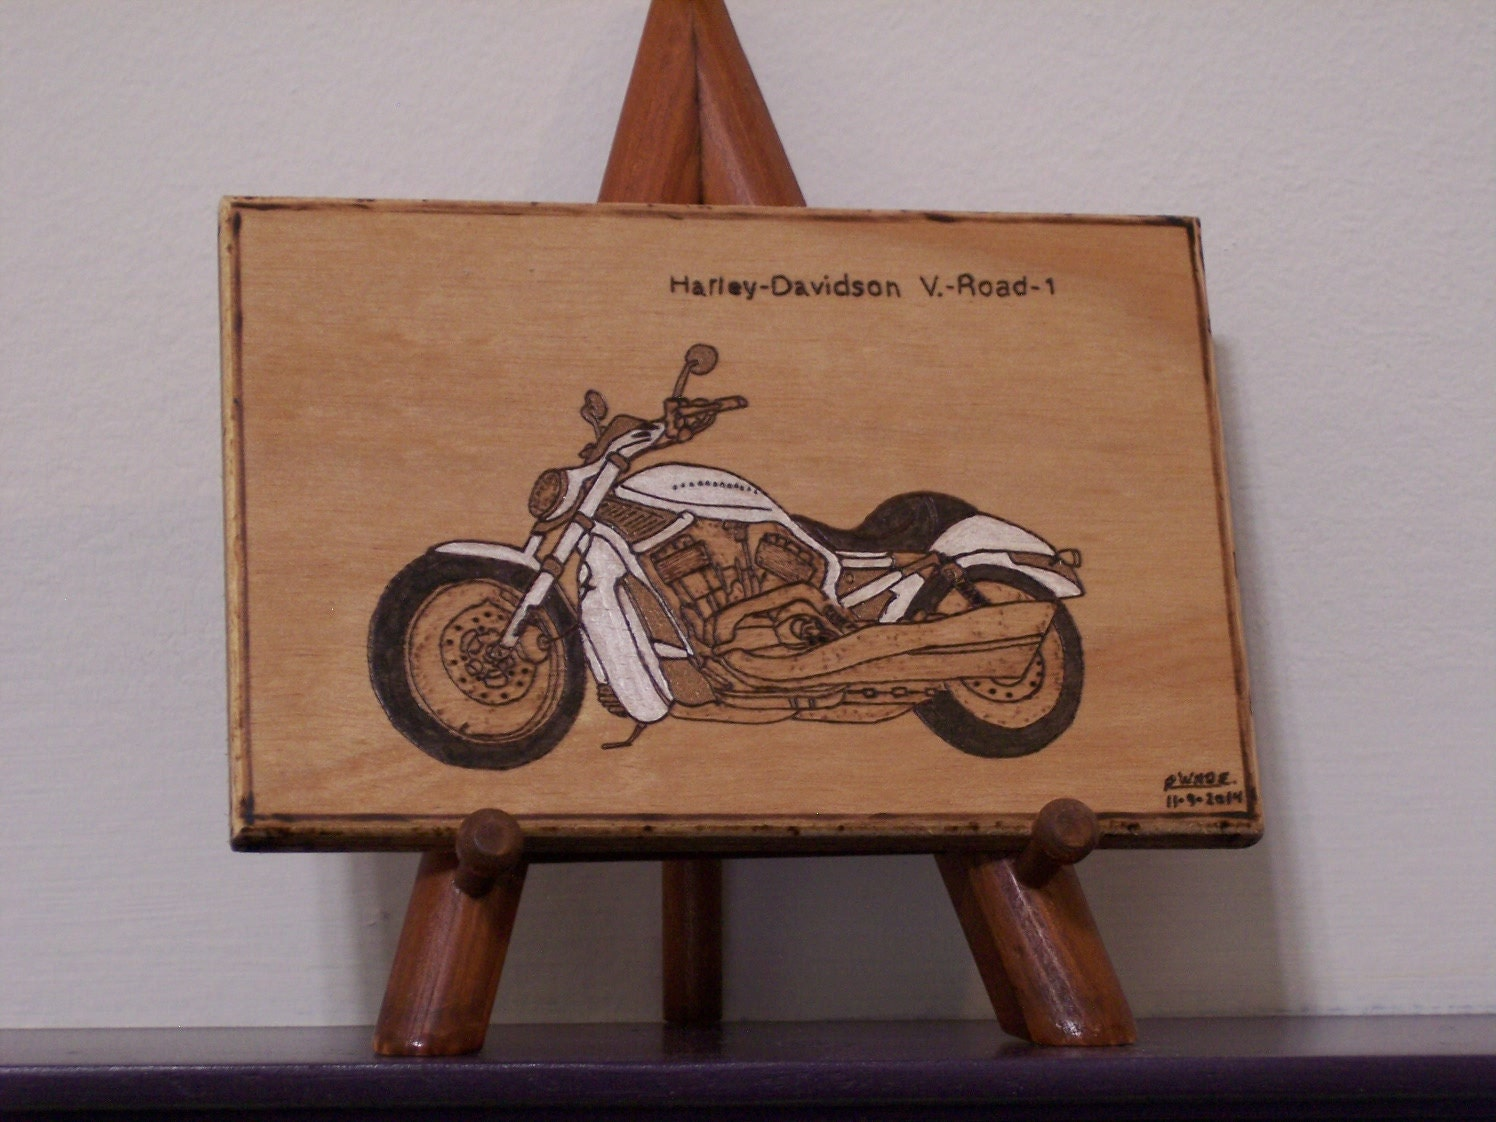 Harley-Davidson V. - Road - 1 Motorcycle Woodburned Wood Ornament / Plaque